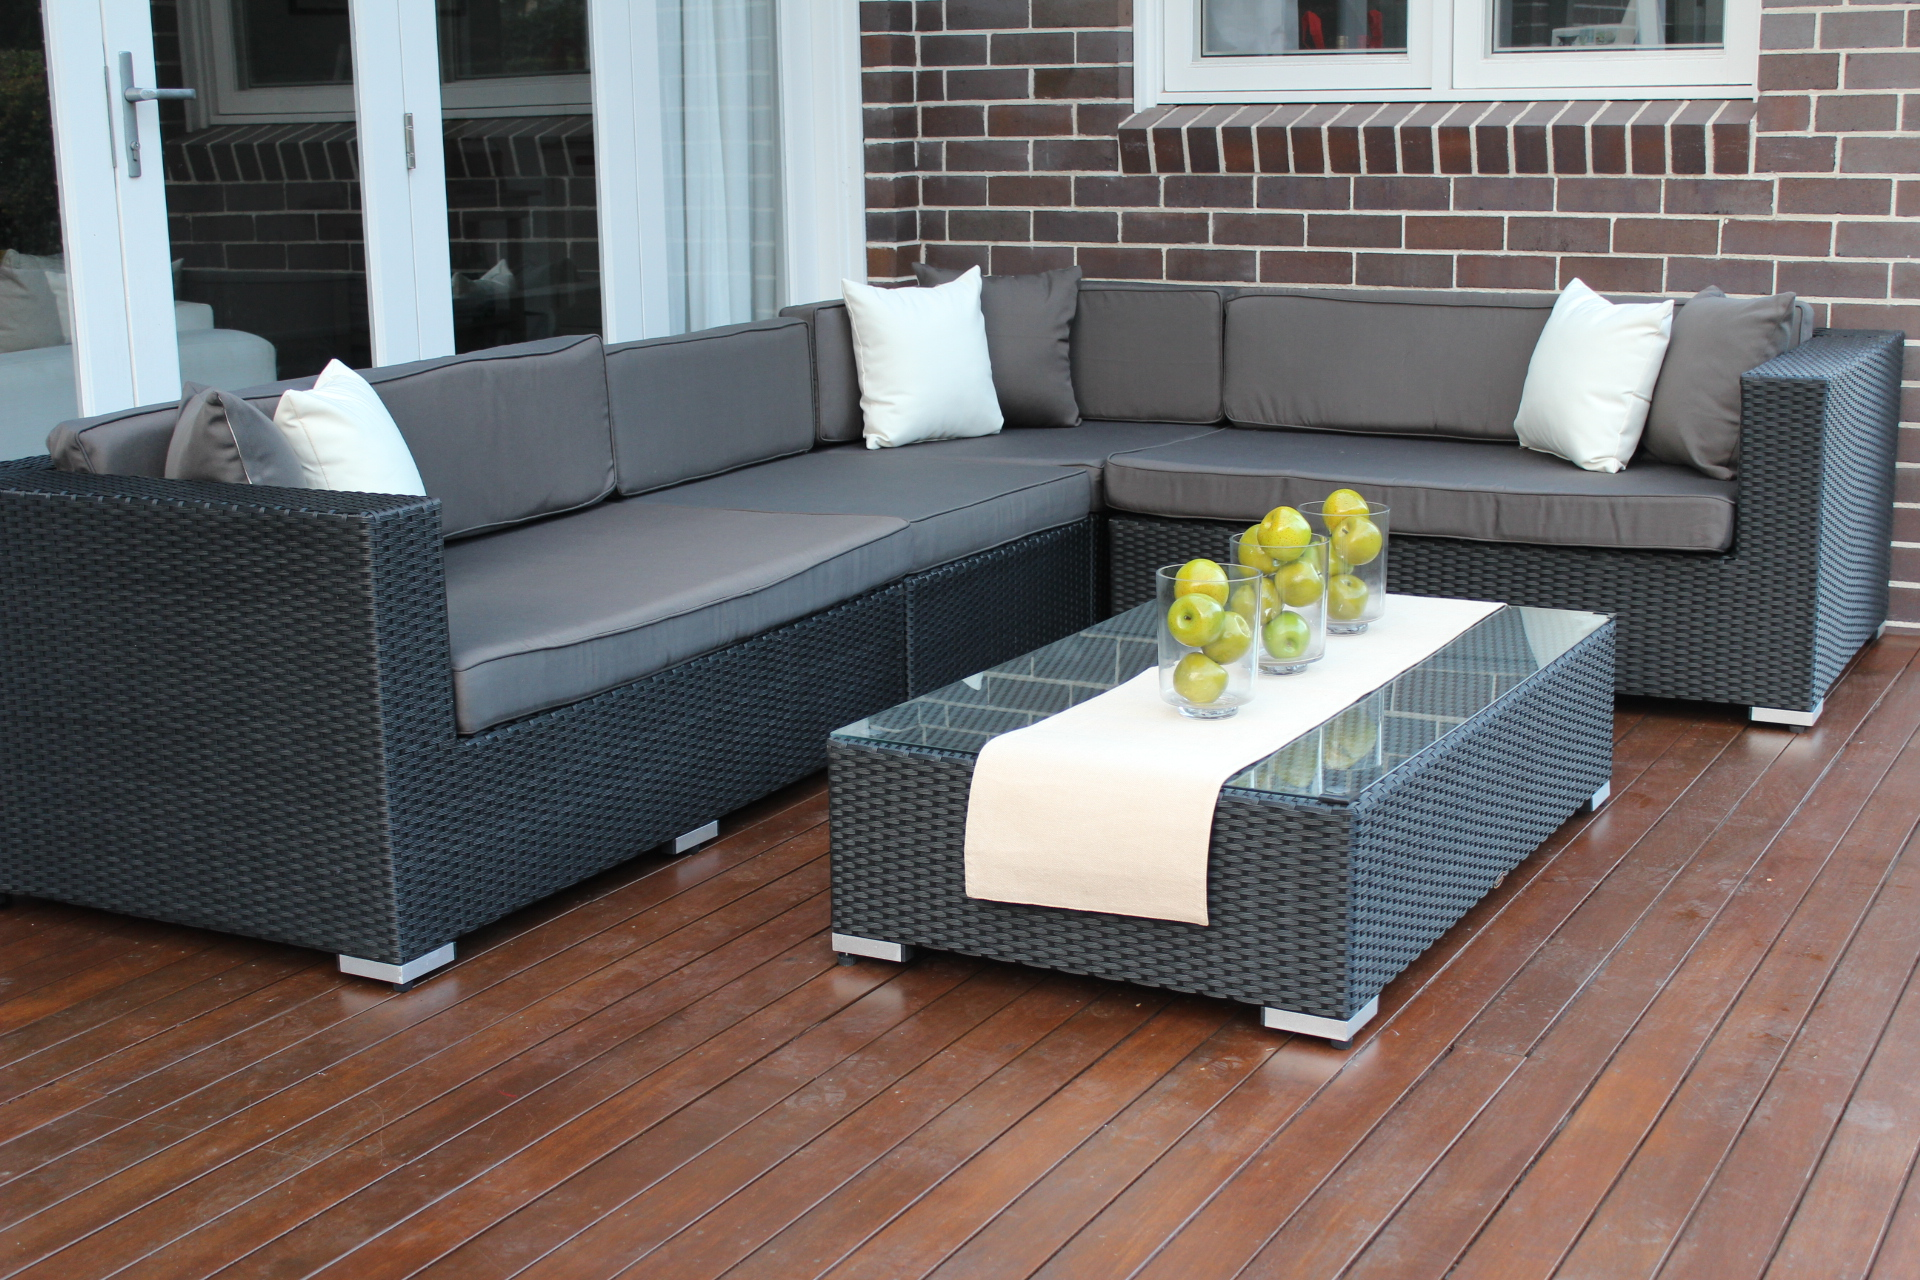 L Shape Modular Outdoor Wicker Furniture Setting Outdoor